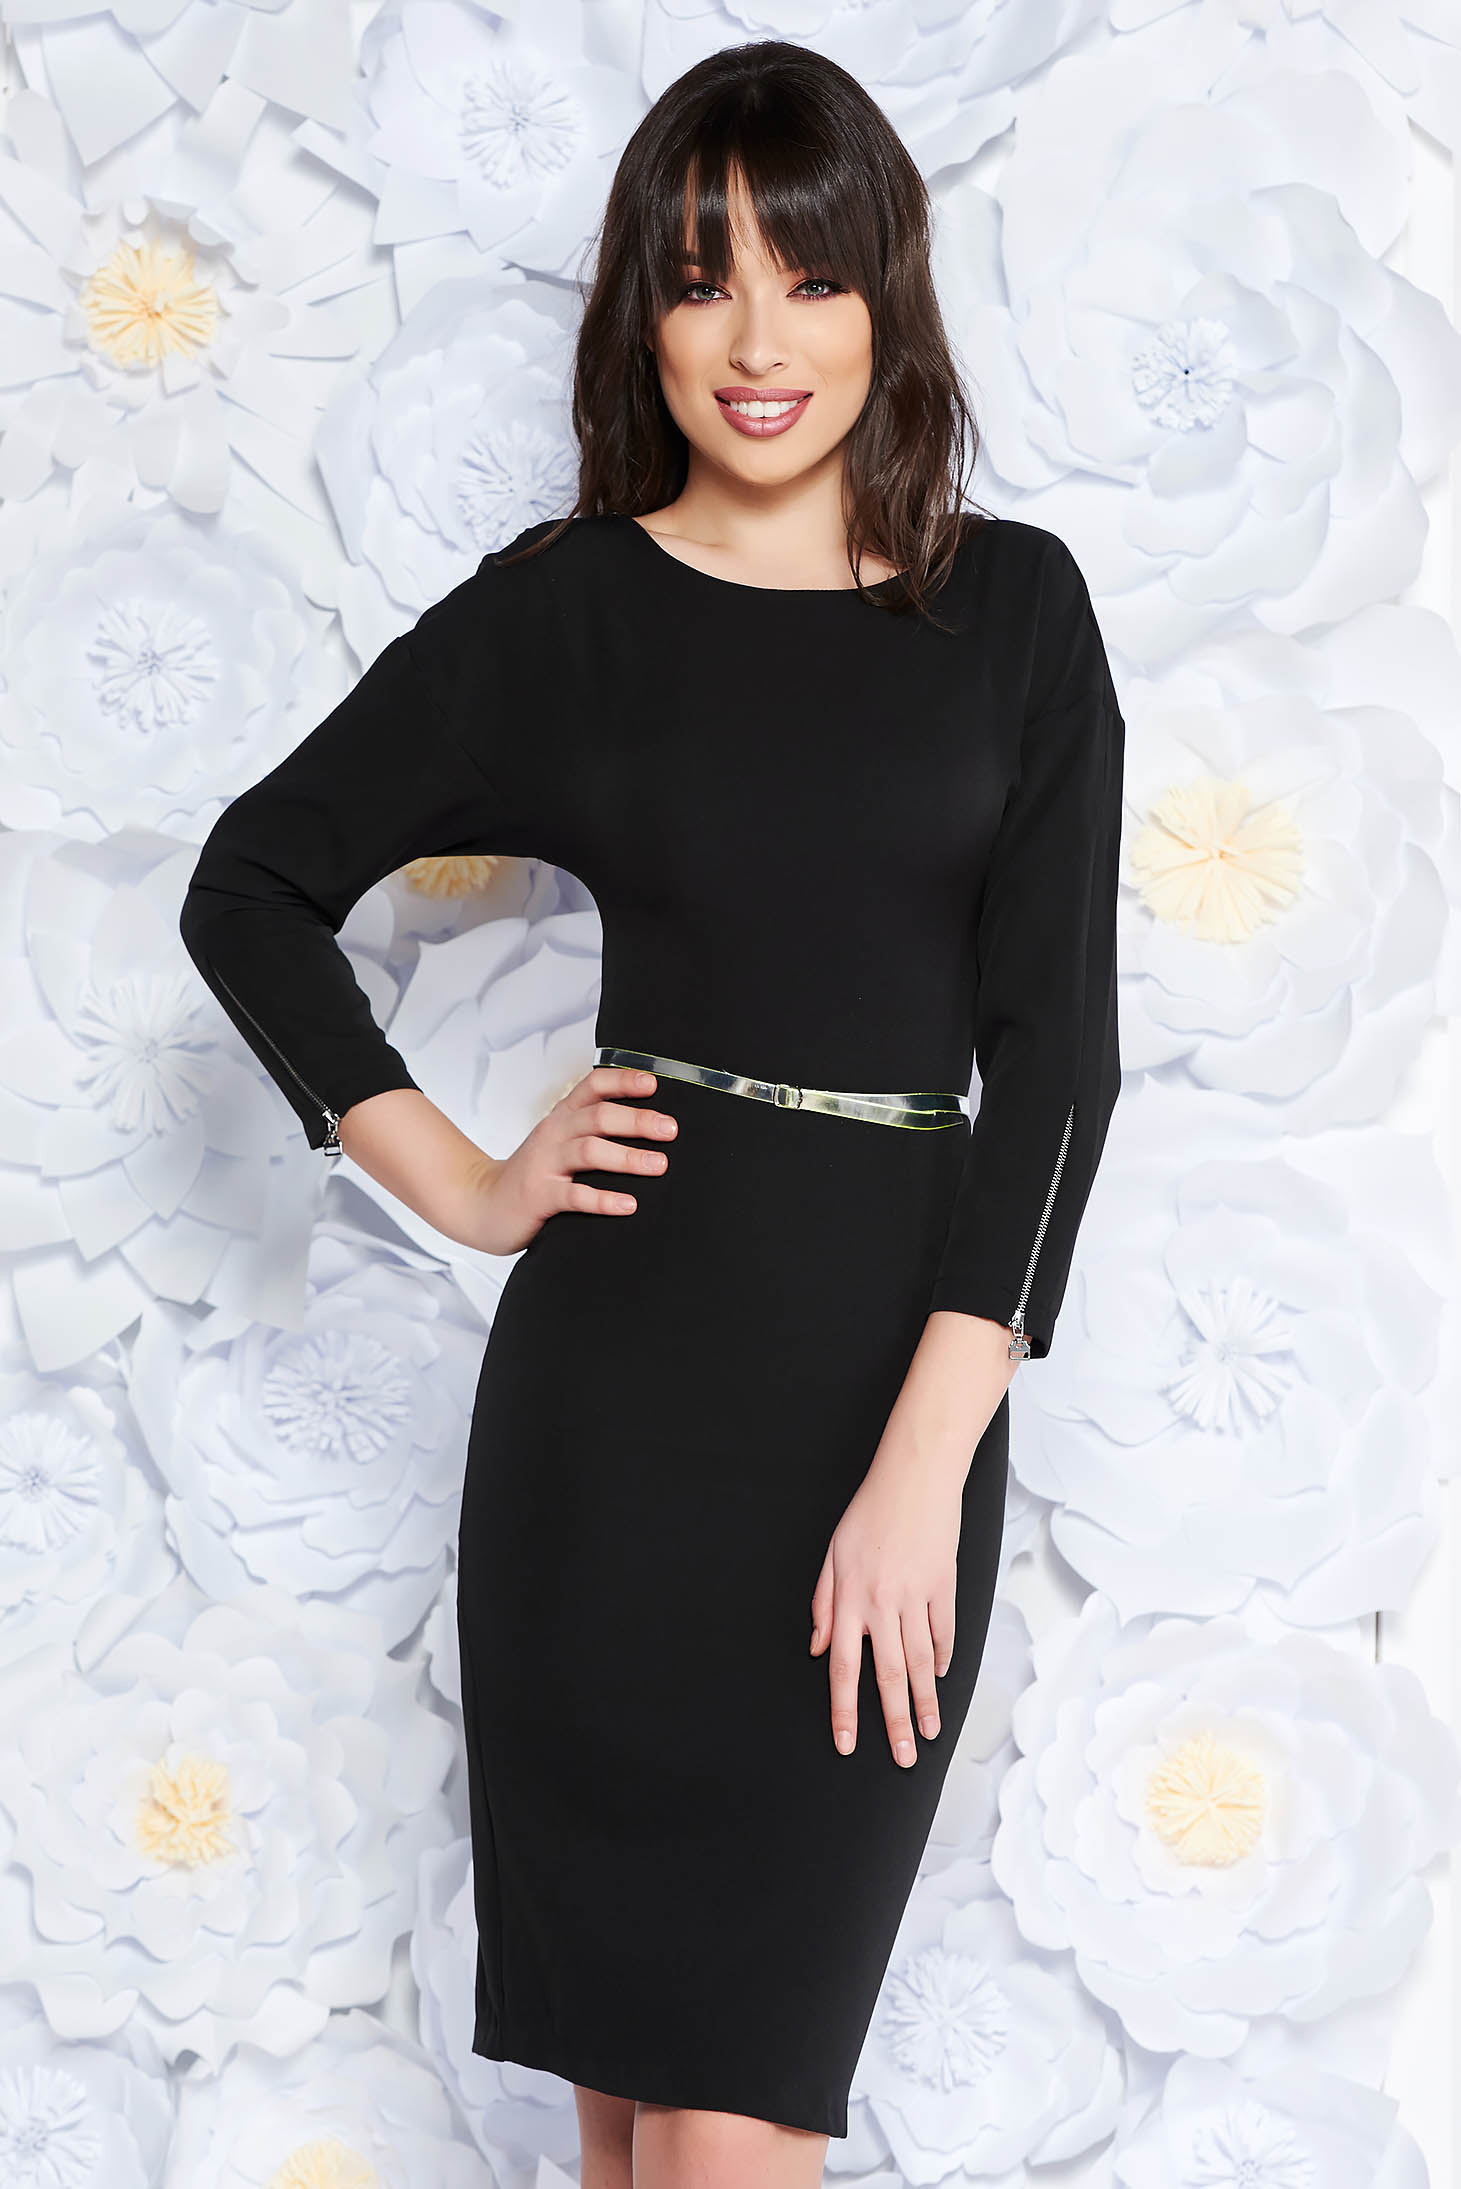 PrettyGirl black elegant midi dress slightly elastic fabric with inside lining accessorized with belt